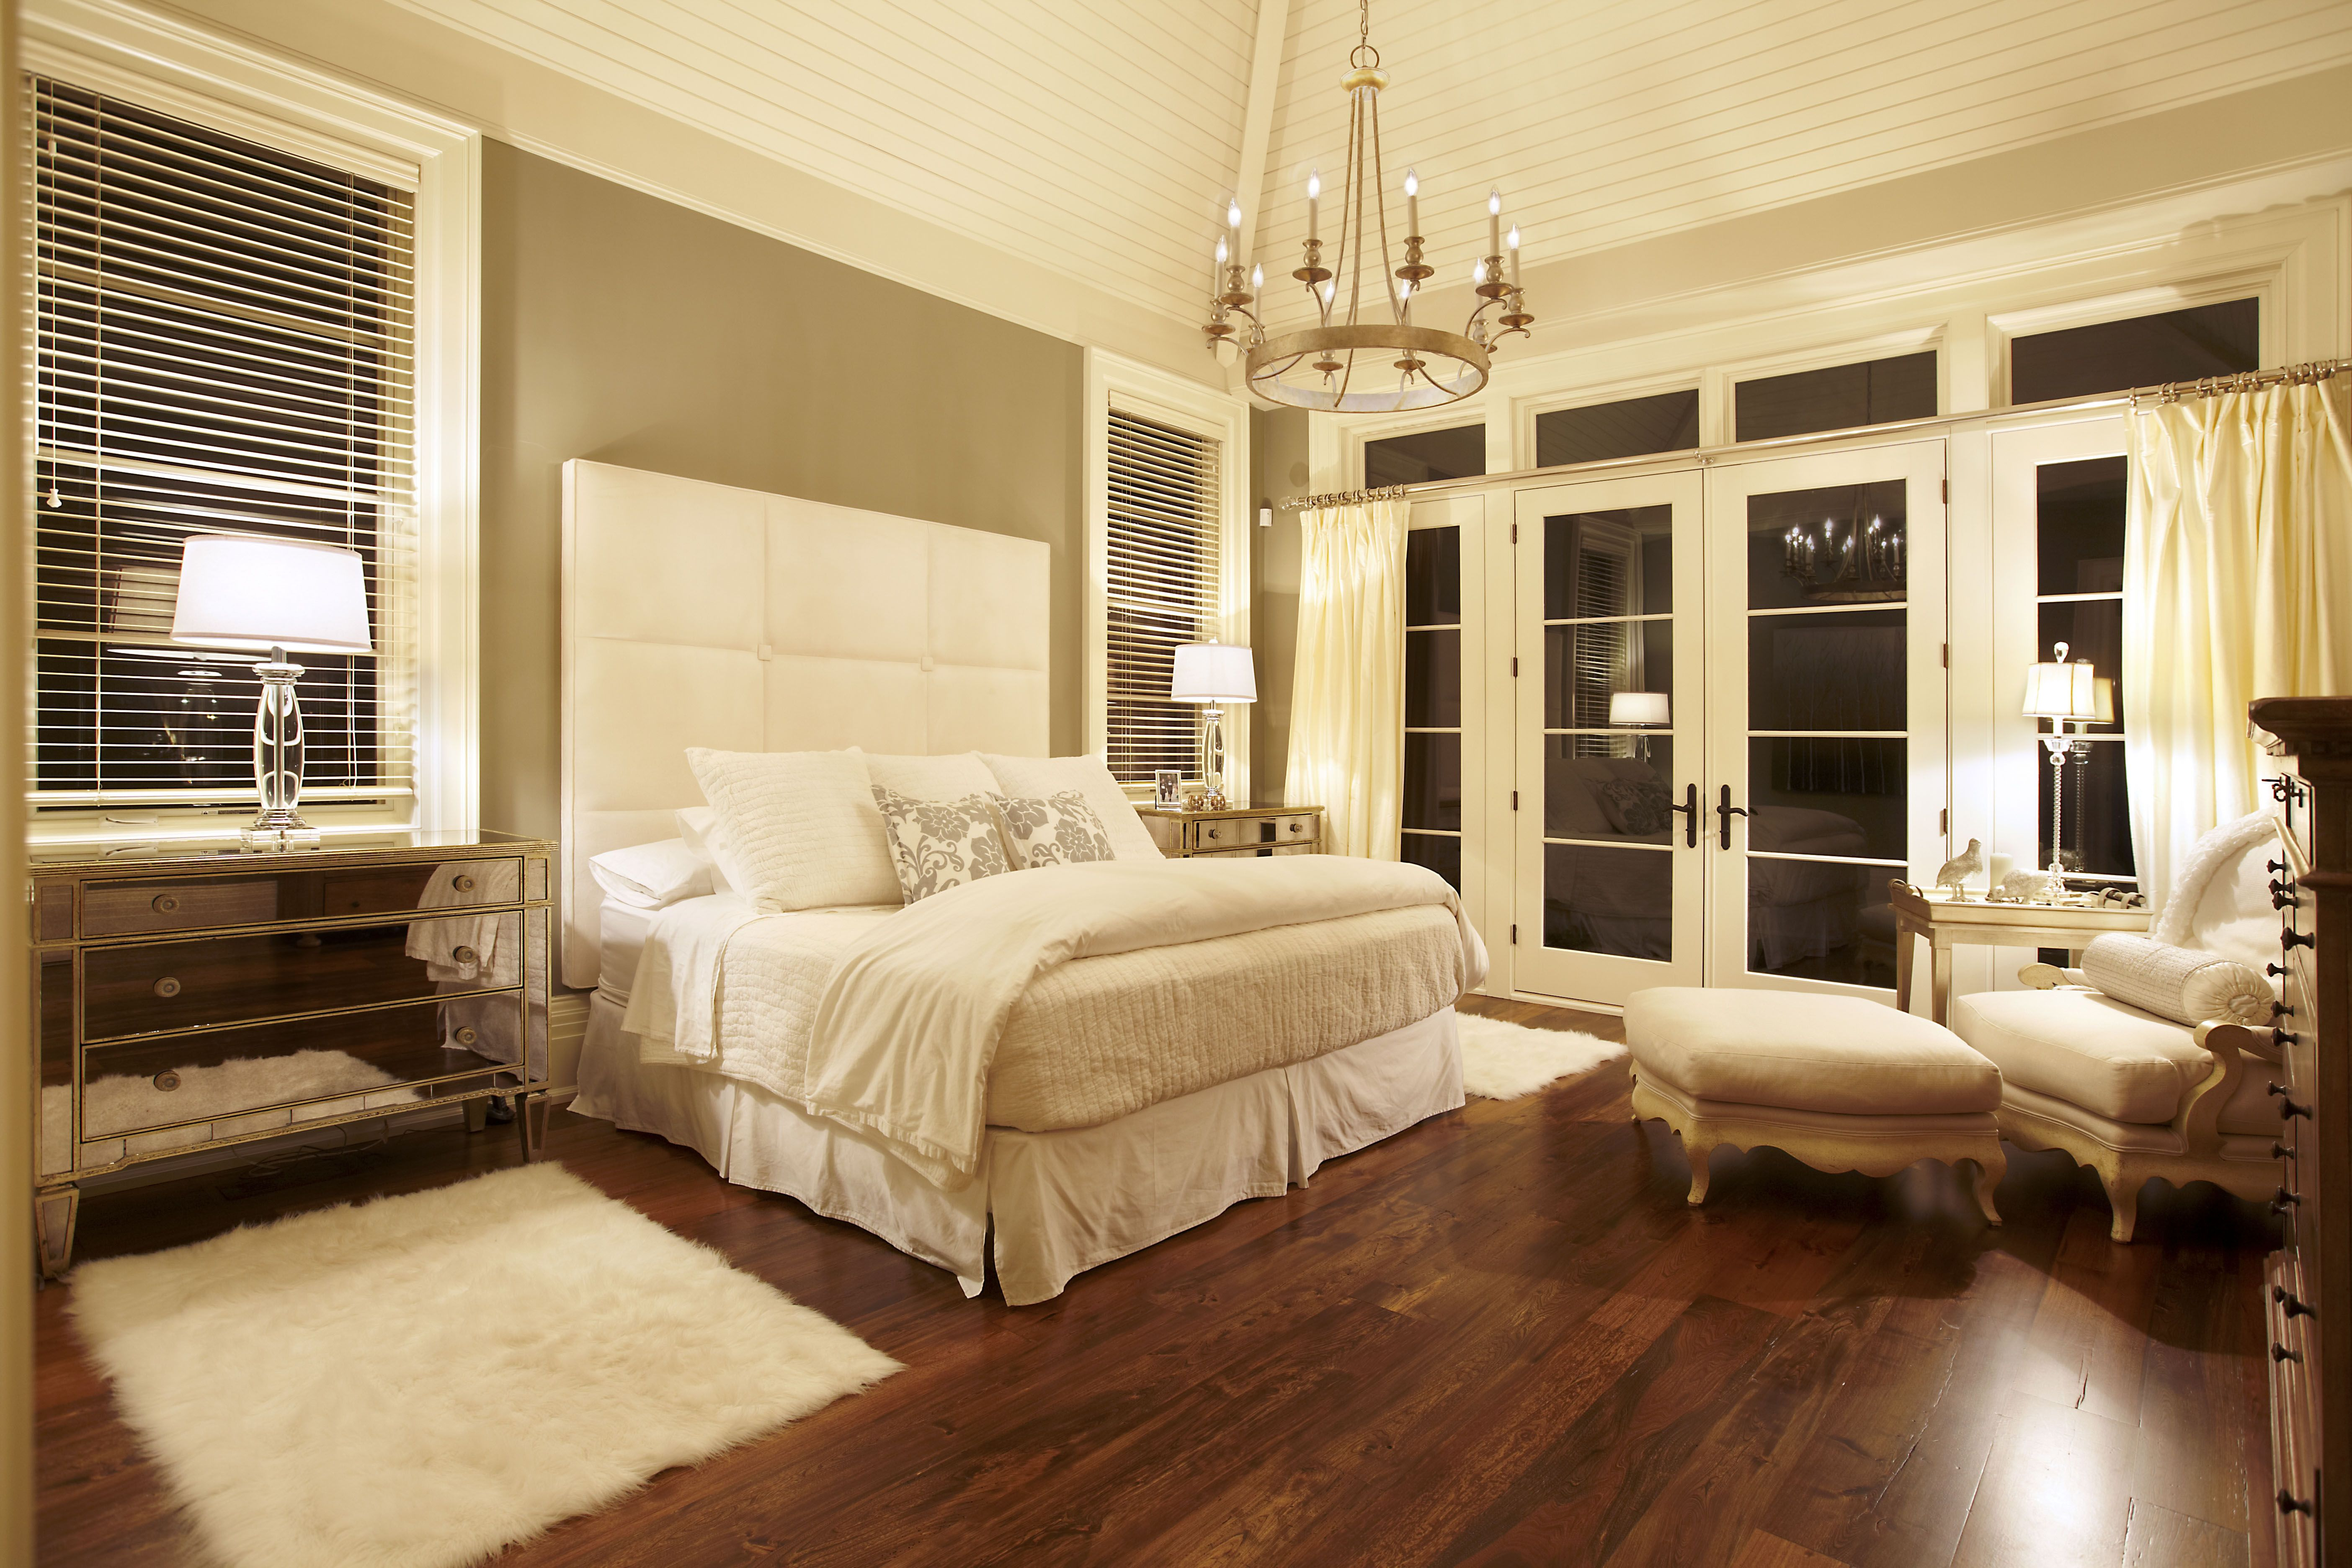 A transitional style master bedroom by parkyn design www - Transitional style bedroom furniture ...